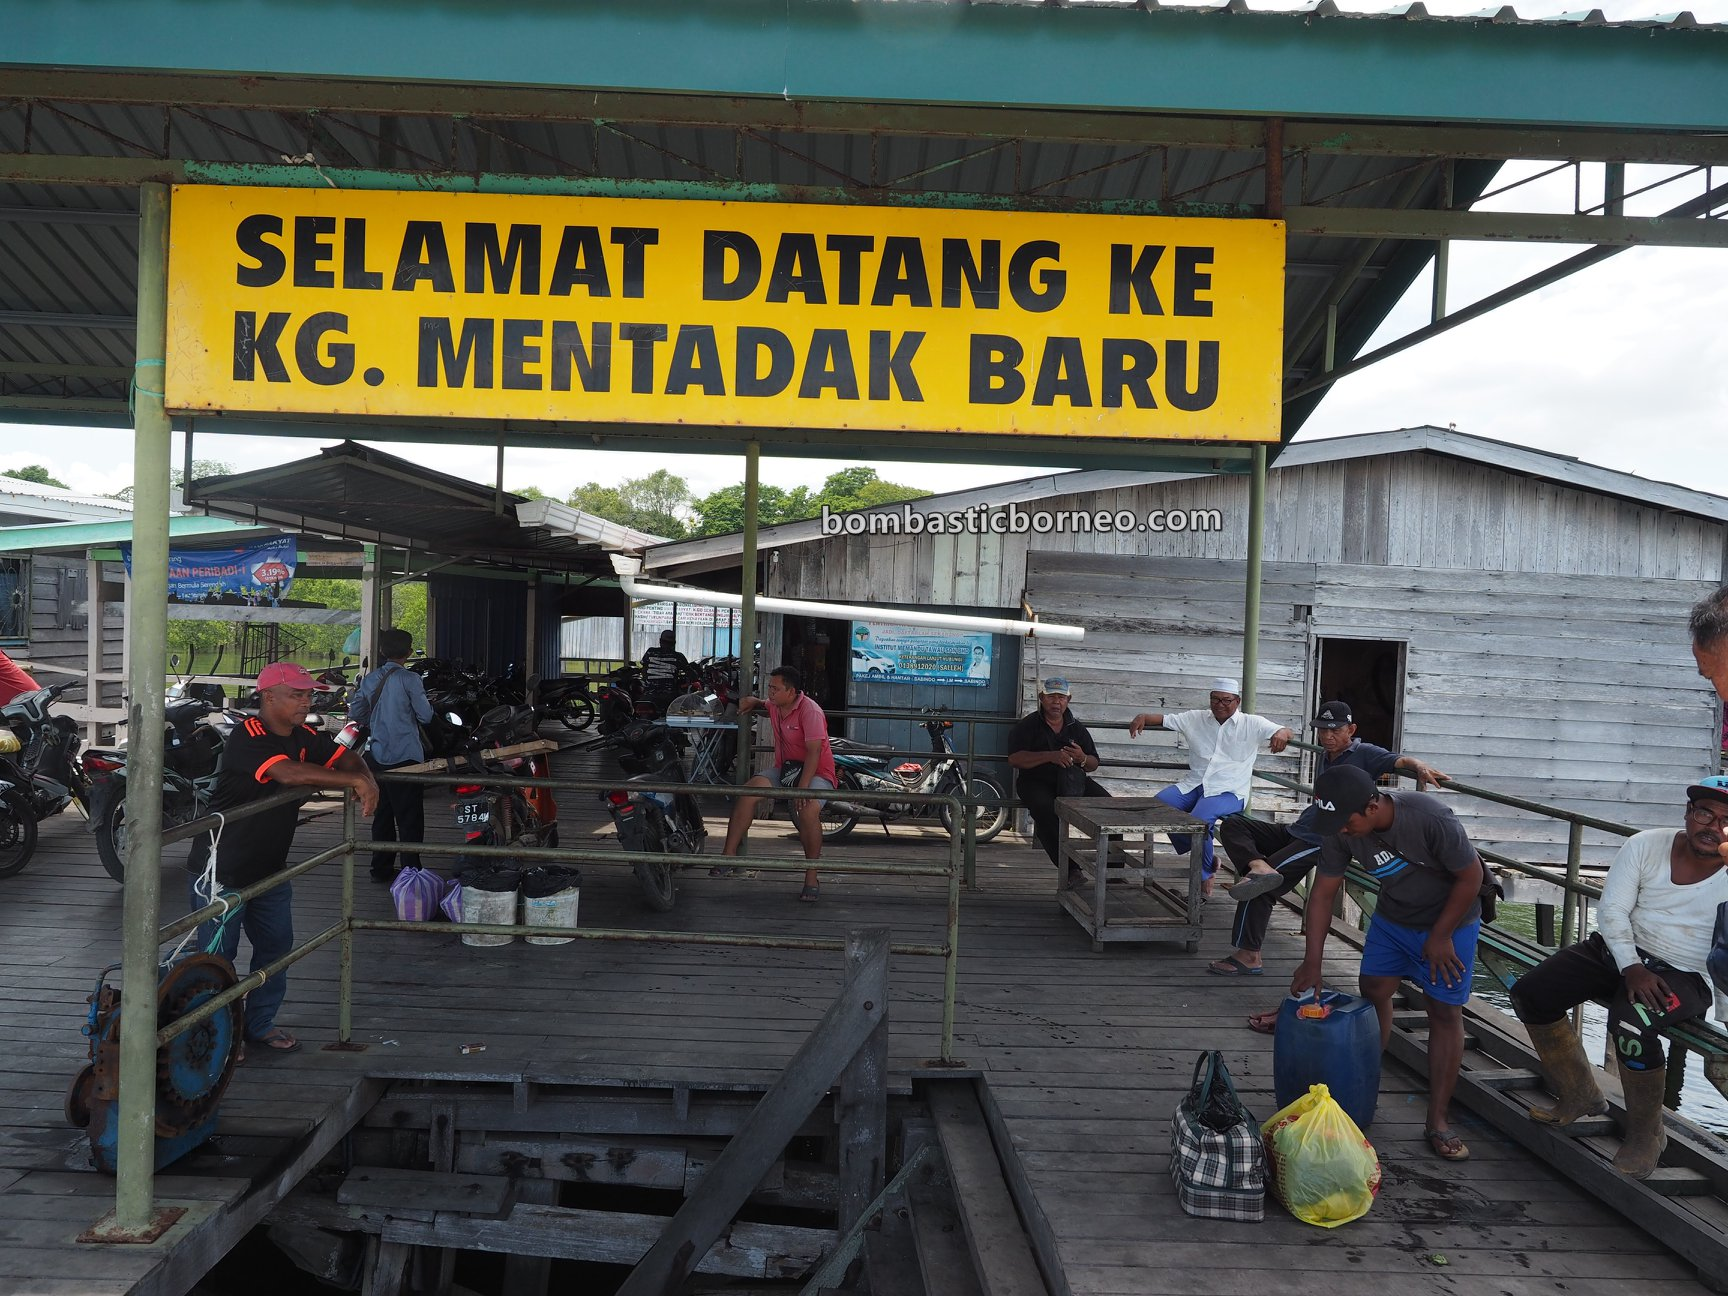 boat ride, exploration, jelajah, jetty, jeti, Transportation, wharf, port, malay village, Tourism, Travel Guide, Borneo, 跨境婆罗洲游踪, 马来西亚沙巴斗湖